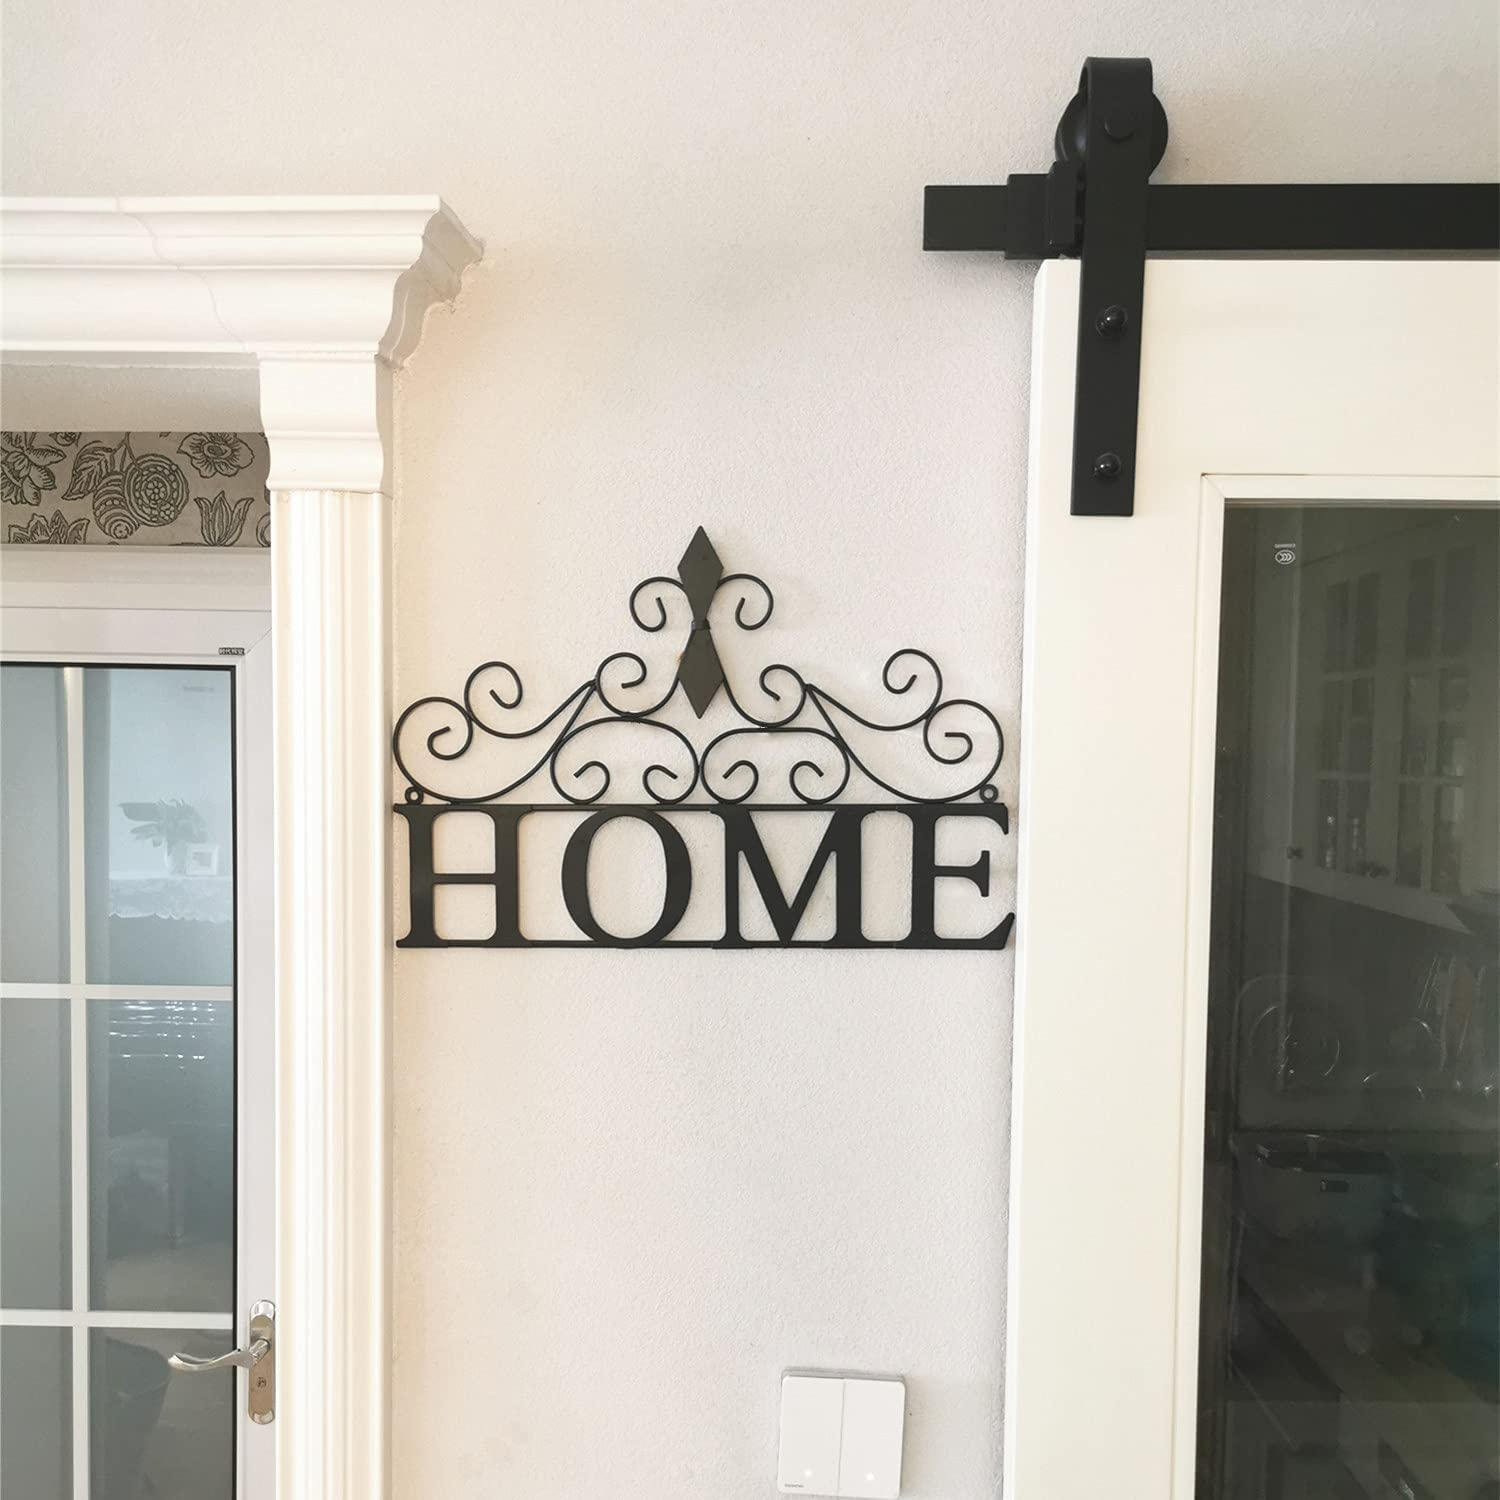 Yamfurvo Scrolled Home Word Wall Decor, Metal Wall Mounted Plaque Door Art Sign, Decorative Hanging Wall Ornament for Bedroom, Living Room, Dining Room, Black